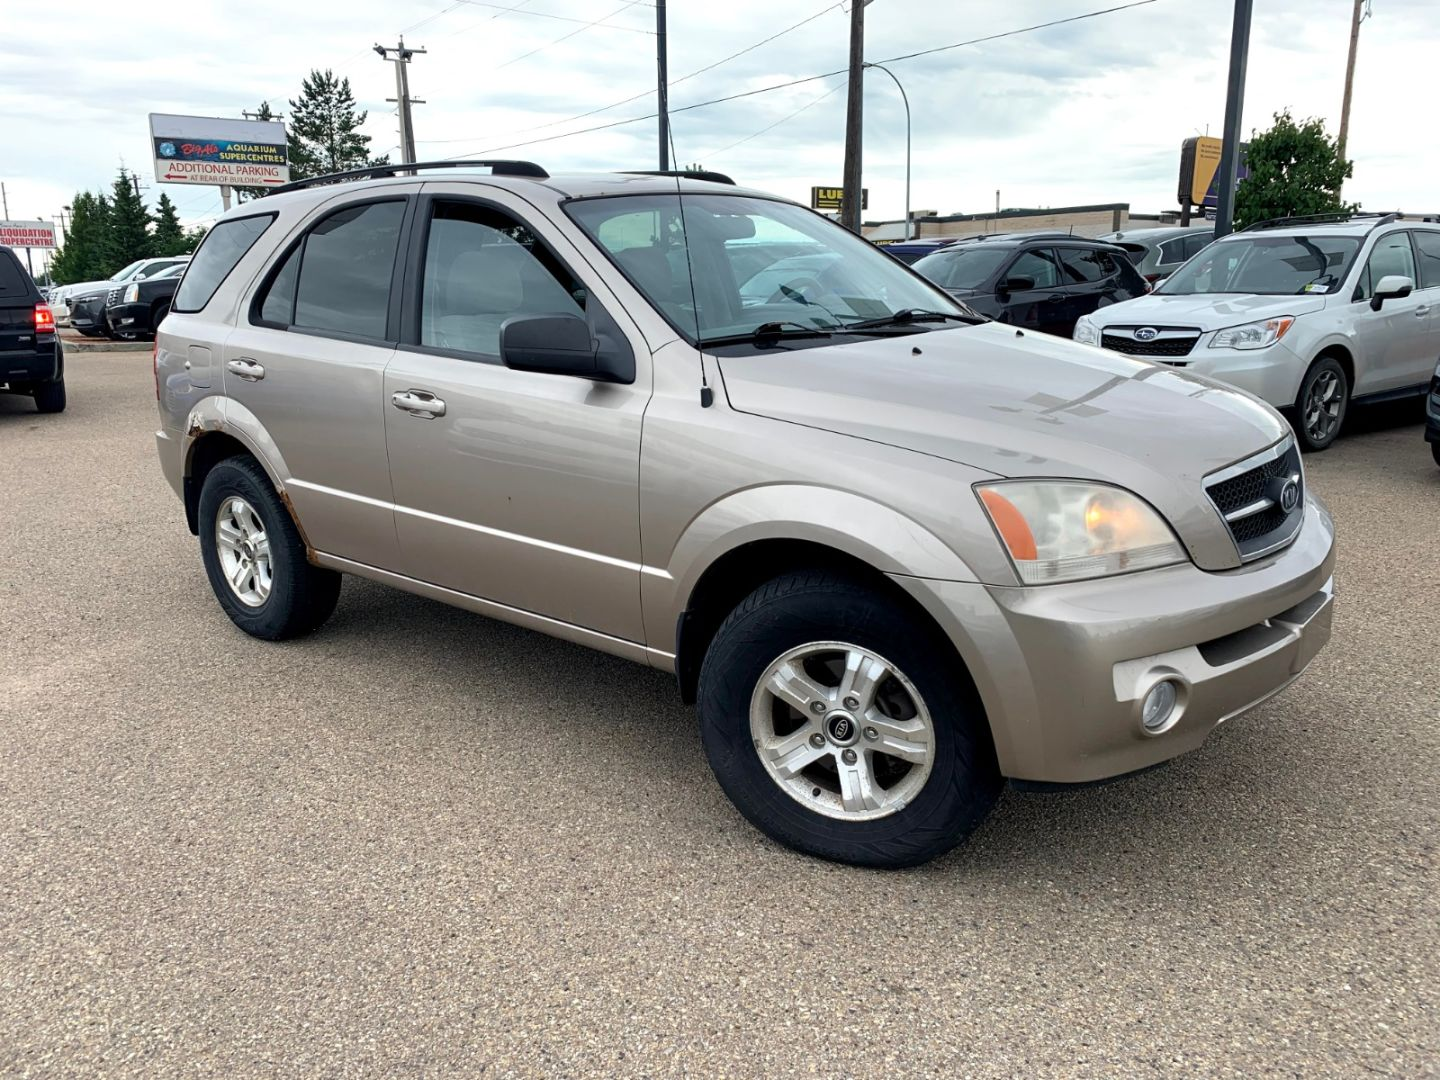 2005 Kia Sorento EX for sale in Edmonton, Alberta